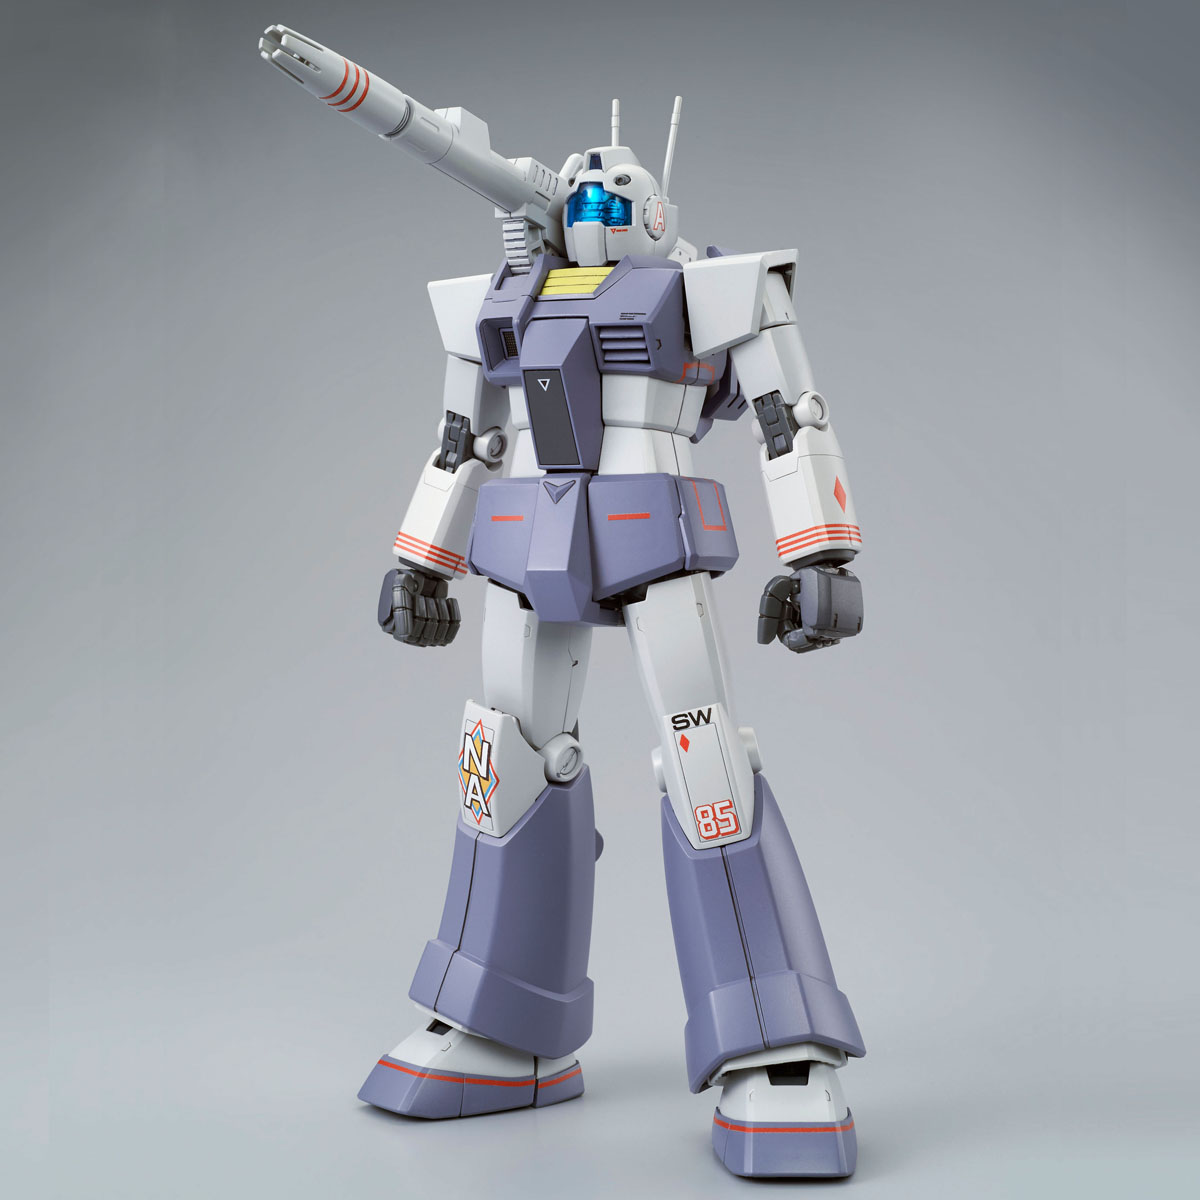 MG 1/100 RGC-80 ジム・キャノン(北米戦線仕様) [GM Cannon (North America Front Line Spec)]